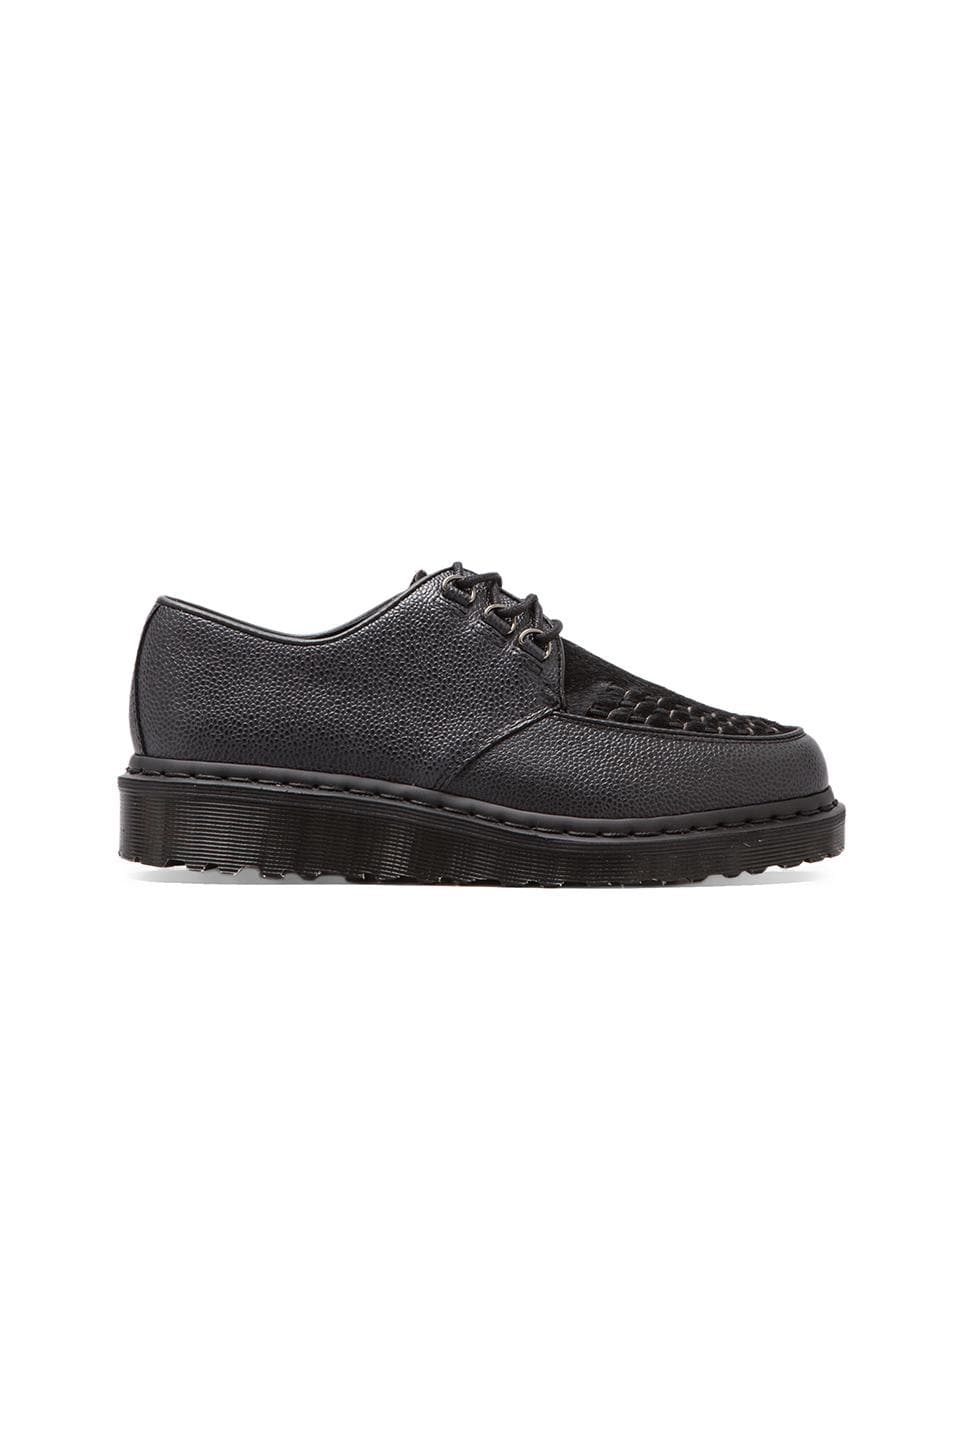 Dr. Martens Beck Creeper Scotchgrain + Italian Hair in Black